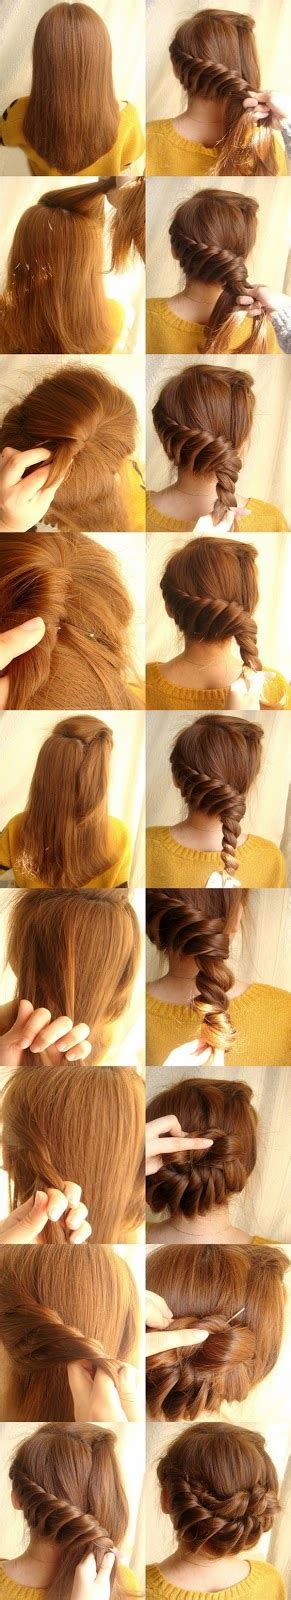 easy hairstyles step by step with pictures step by step hairstyles easy made stylesnew